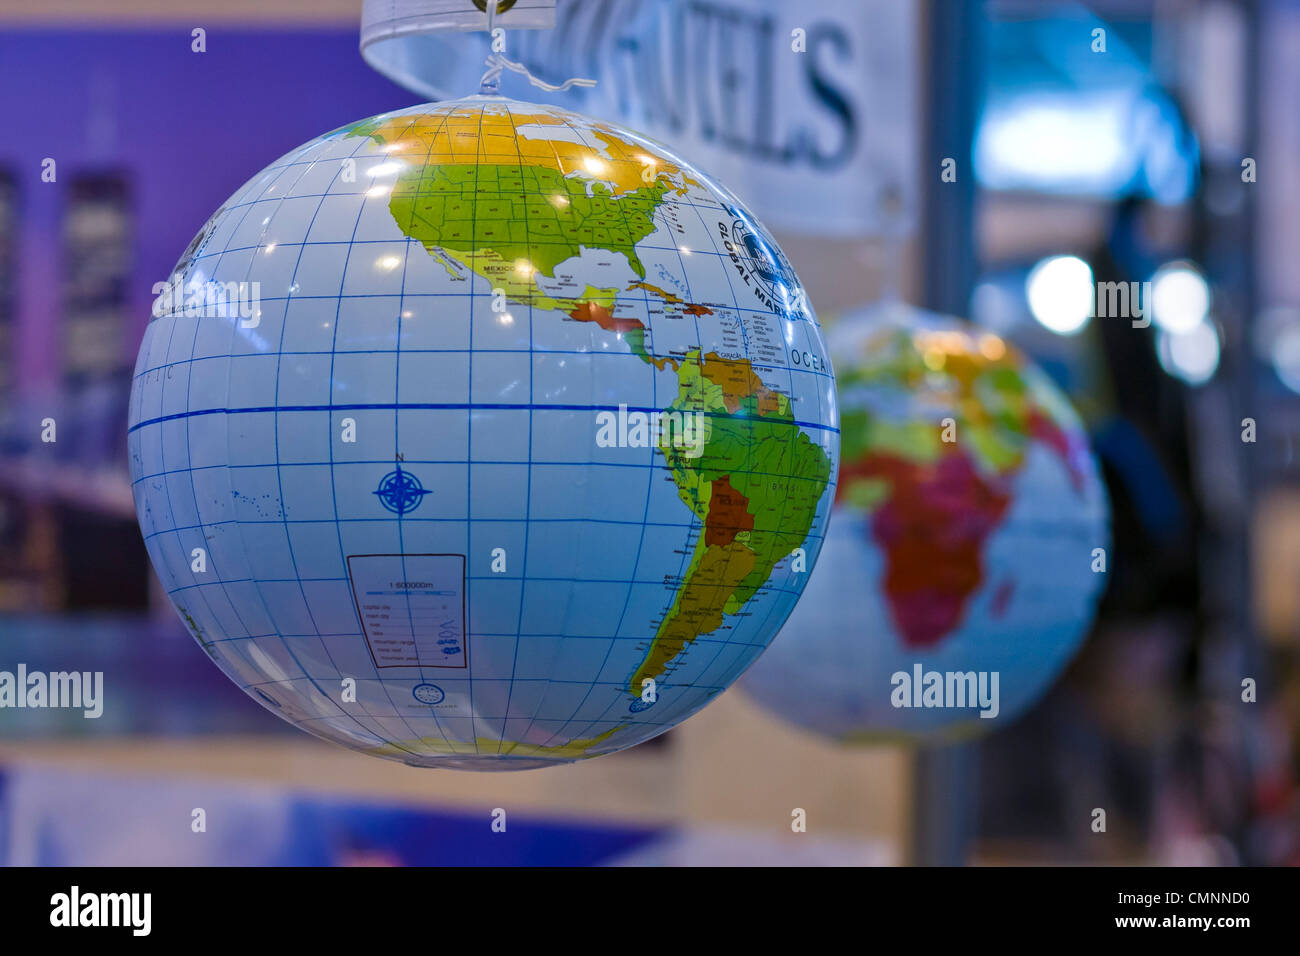 Inflatable earth globe map International Tourism Show 2012 Paris - Stock Image